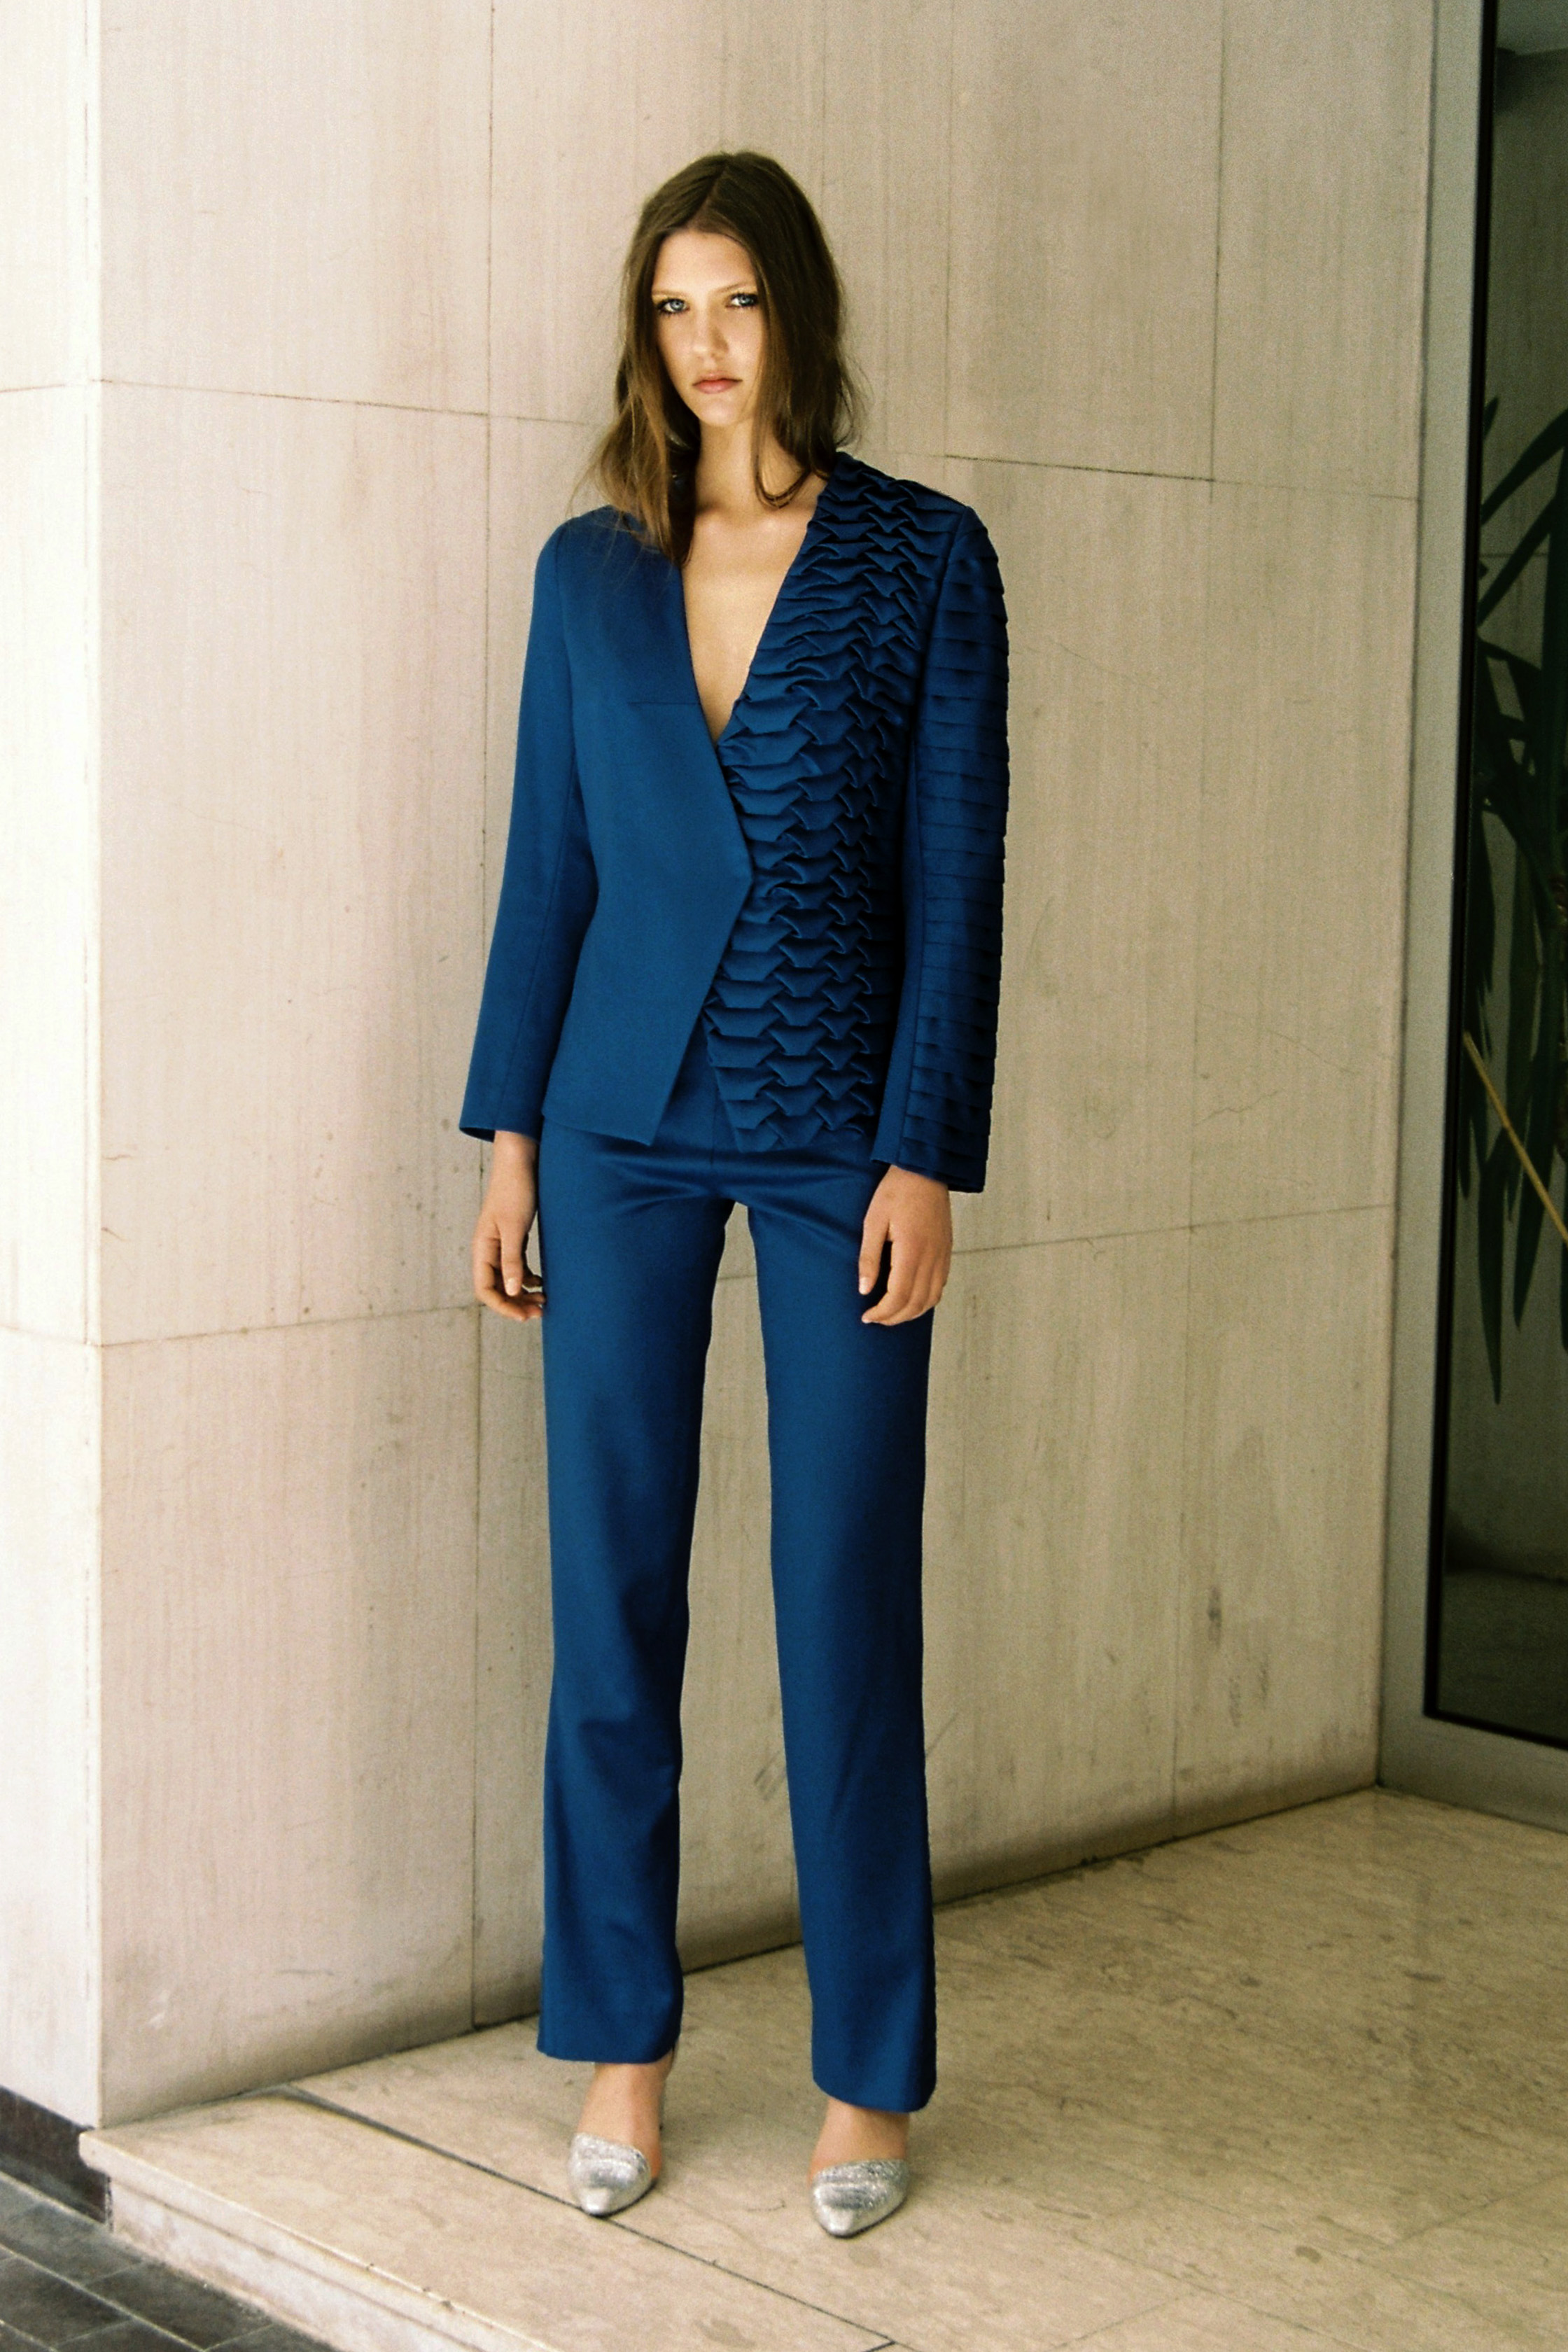 Suit / Jacket and Pants: Zorana Janjic   Shoes:  J. Dileviciute